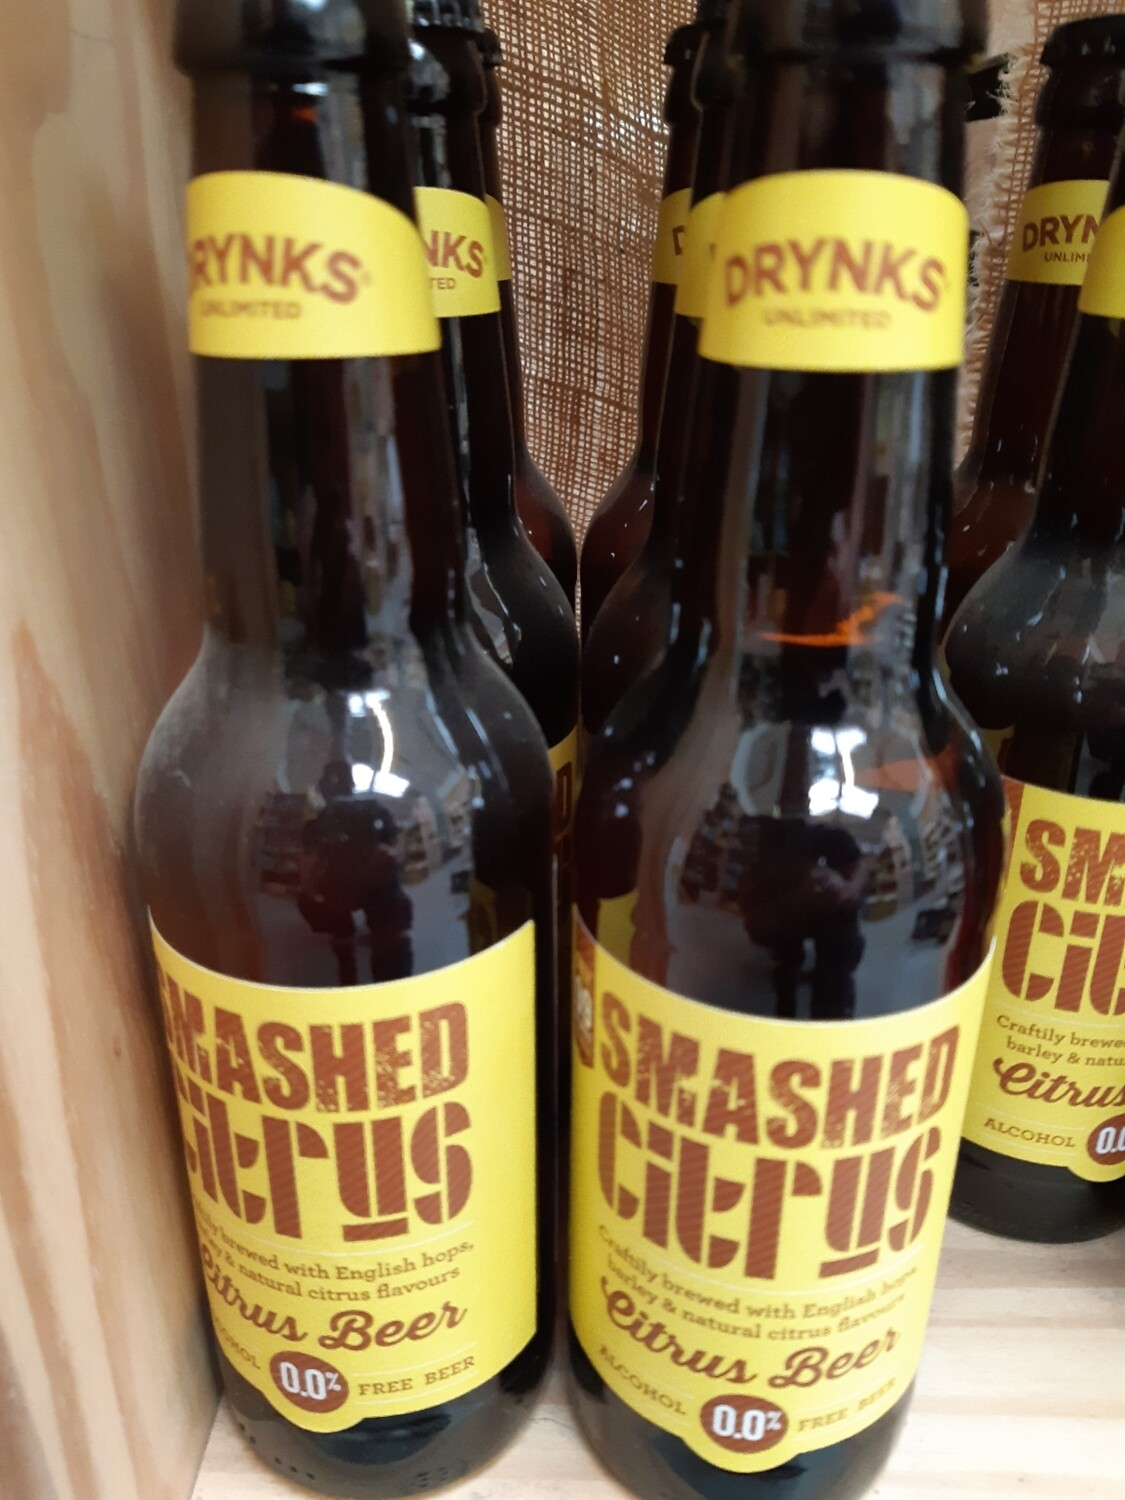 Zz Smashed Citrus Beer (alcohol free)